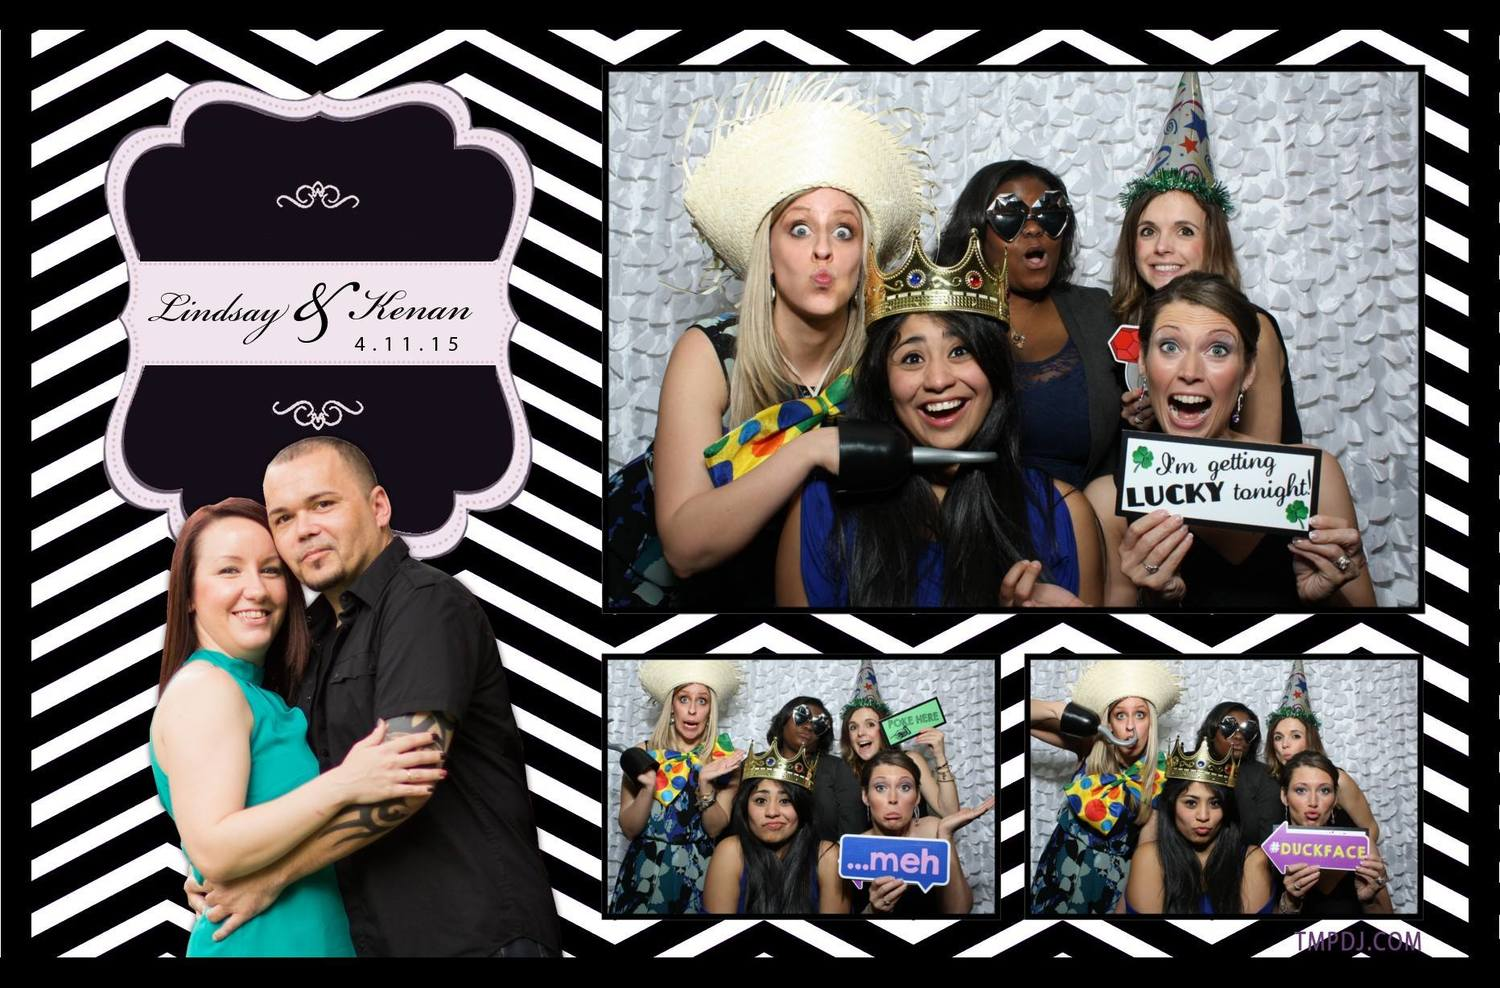 photo-booth-rochester-ny-13.jpg